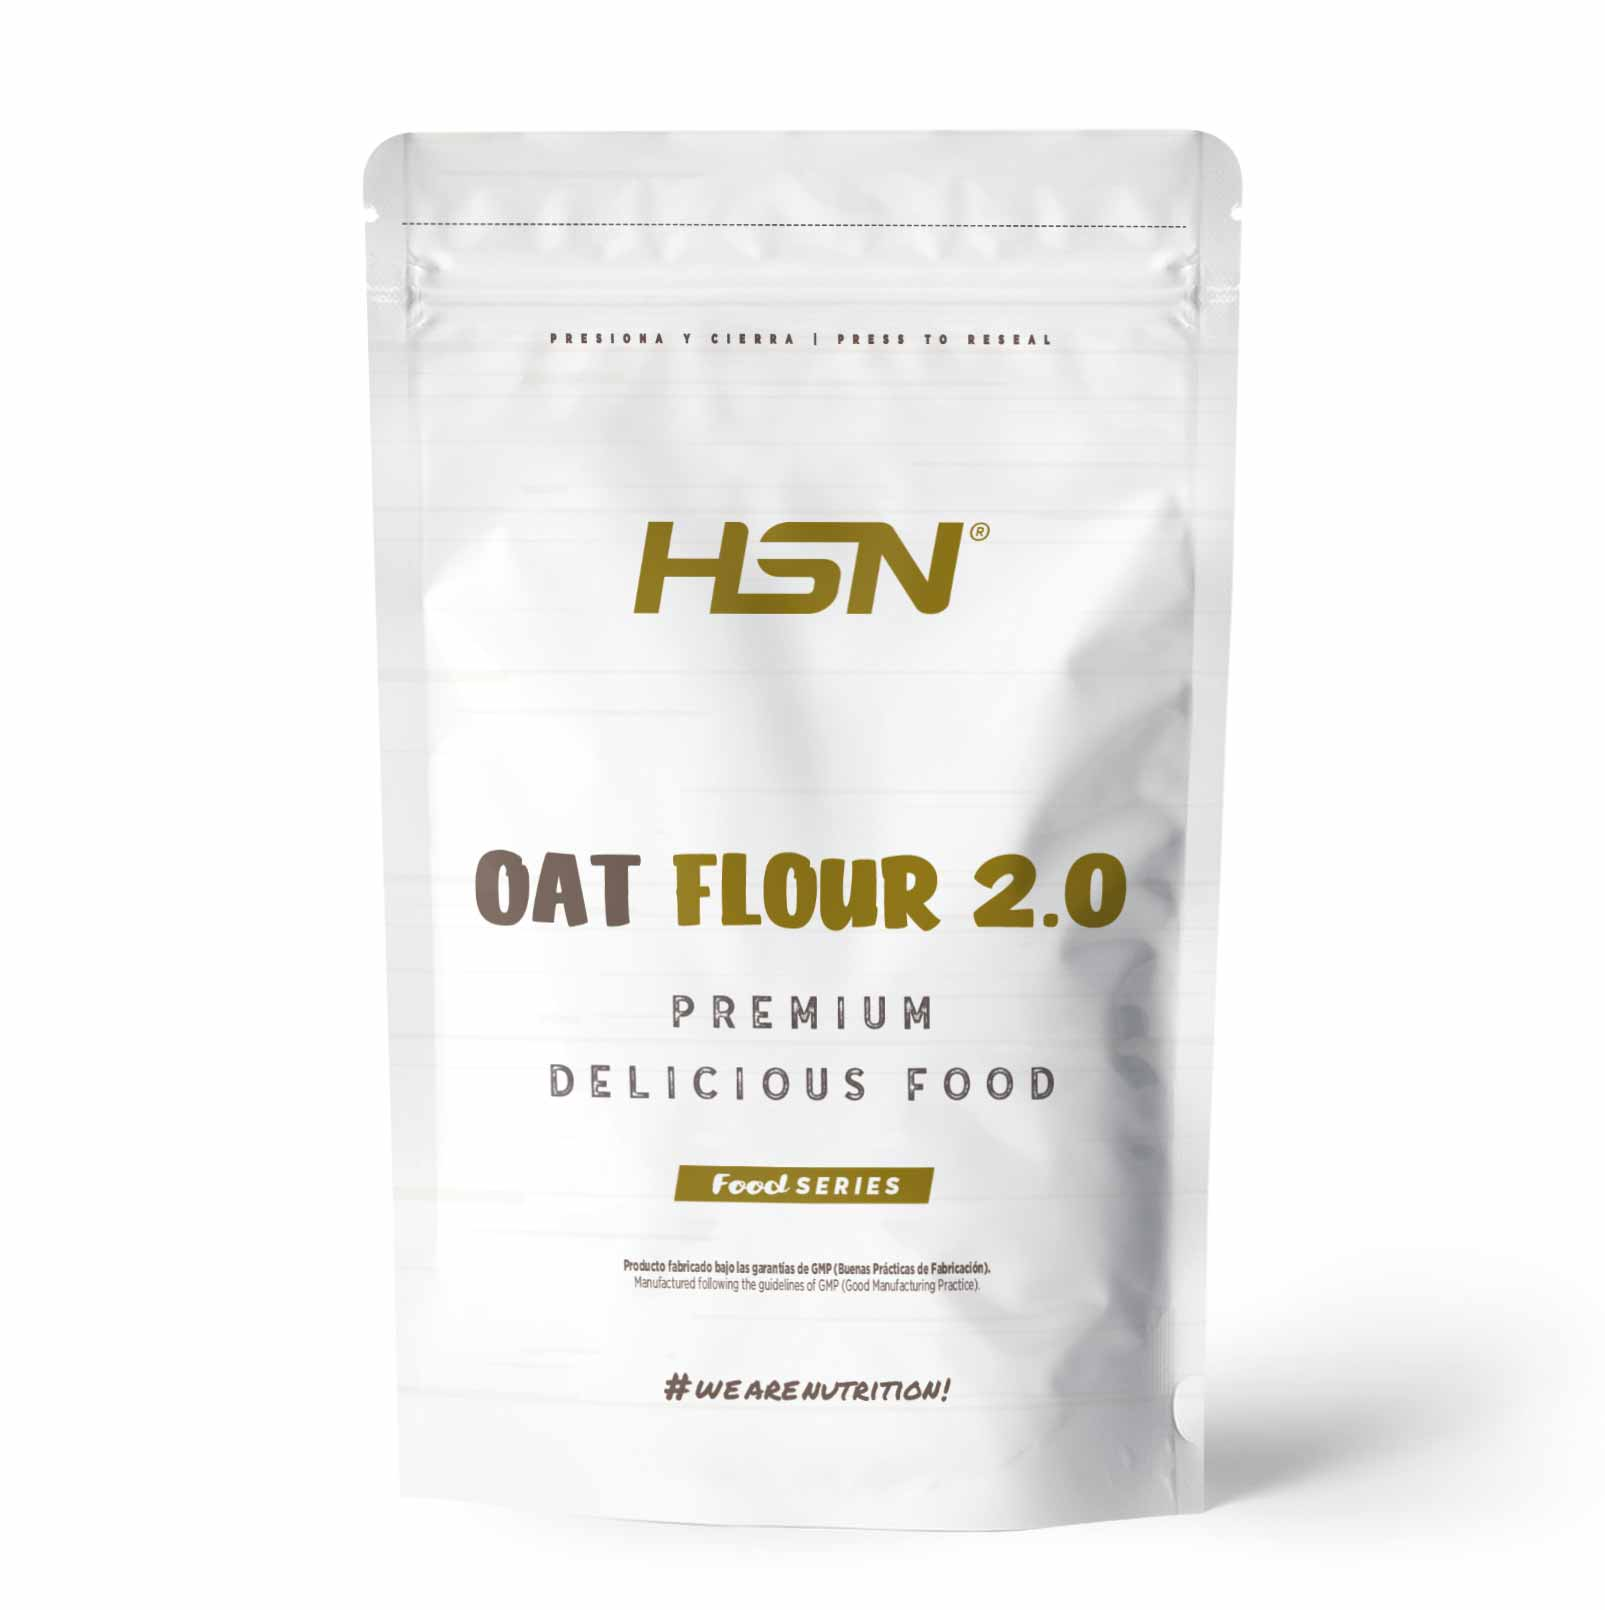 https://cdn.hsnstore.com/media/catalog/product/o/a/oat-flour-powder-hsn_1.jpg